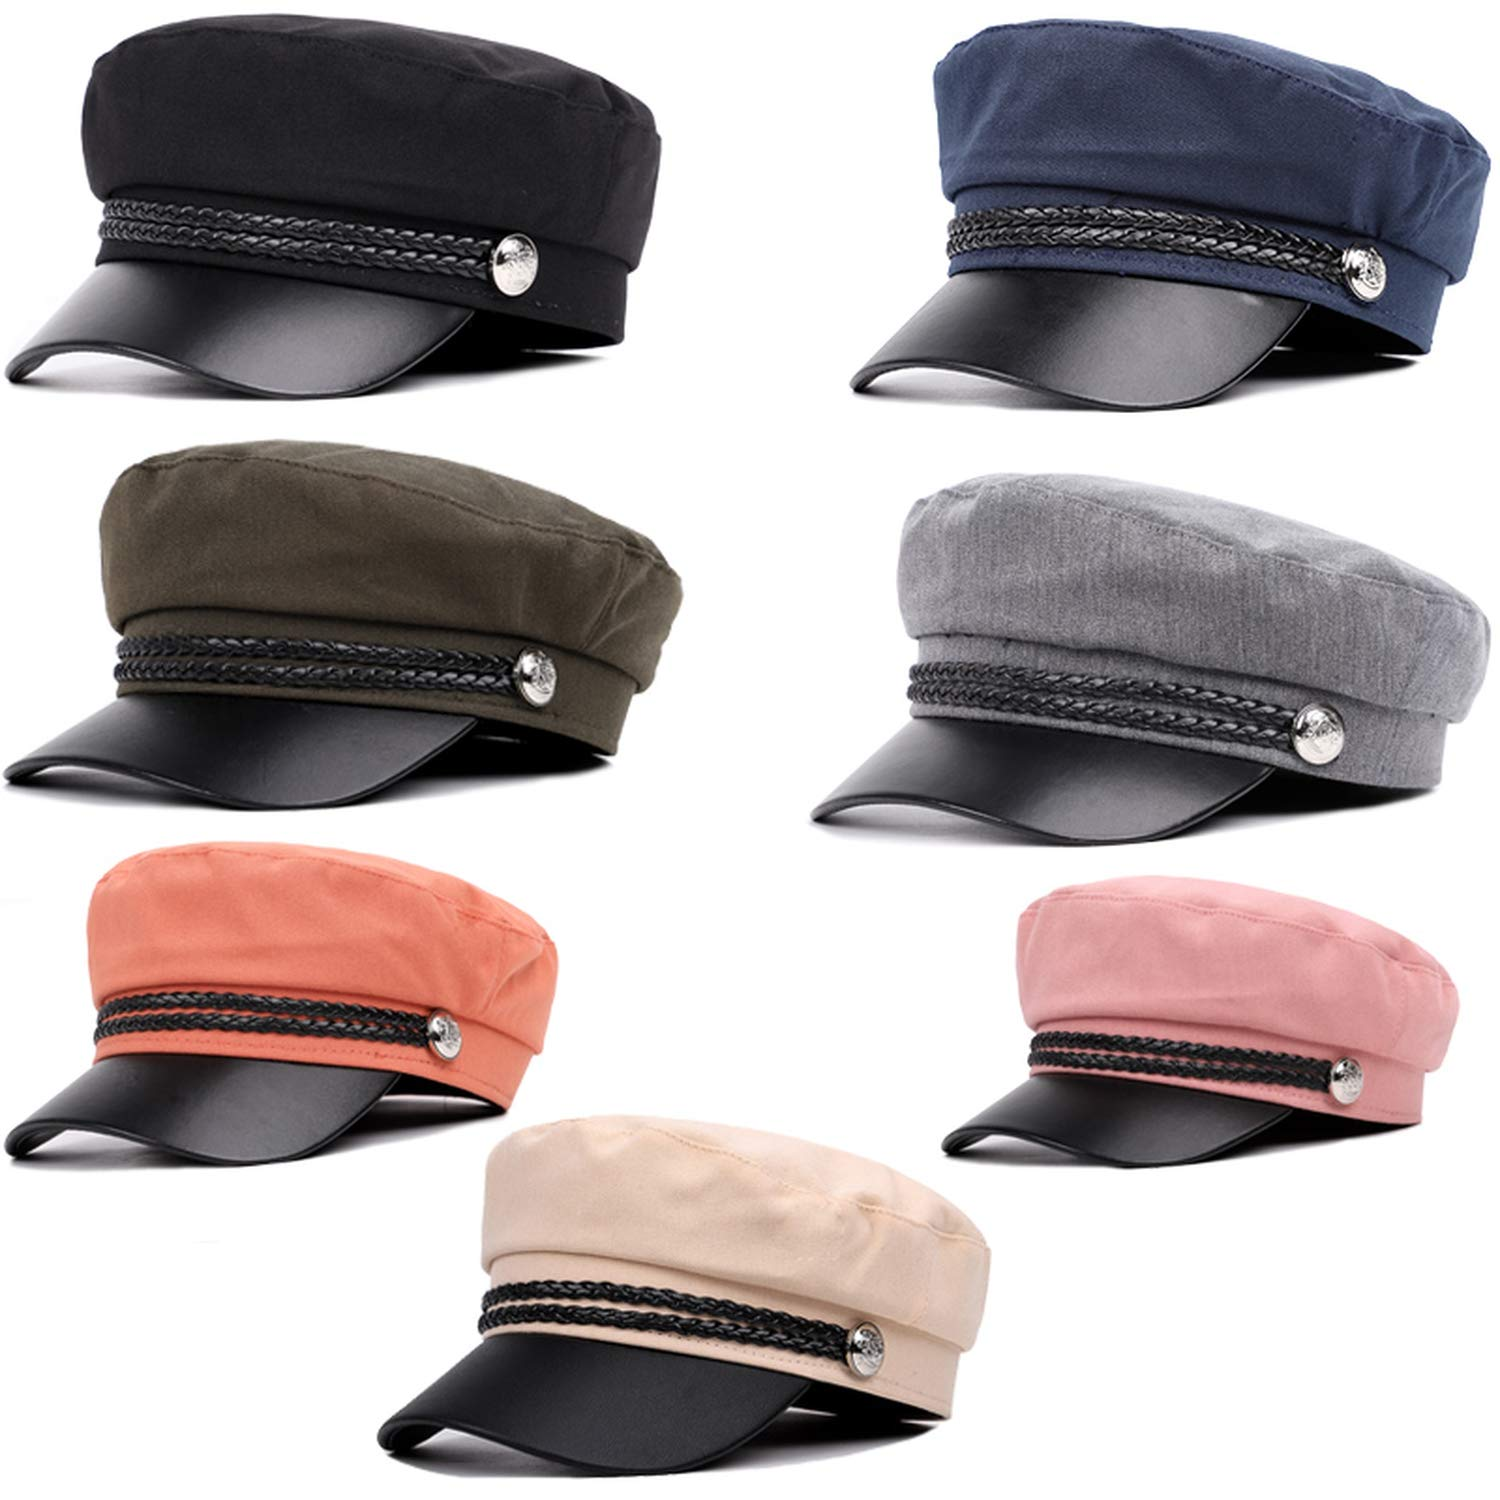 Mens Washed Cotton Flat top Military Cap Solid Color Fashion Button hat Leather niversal Outdoor